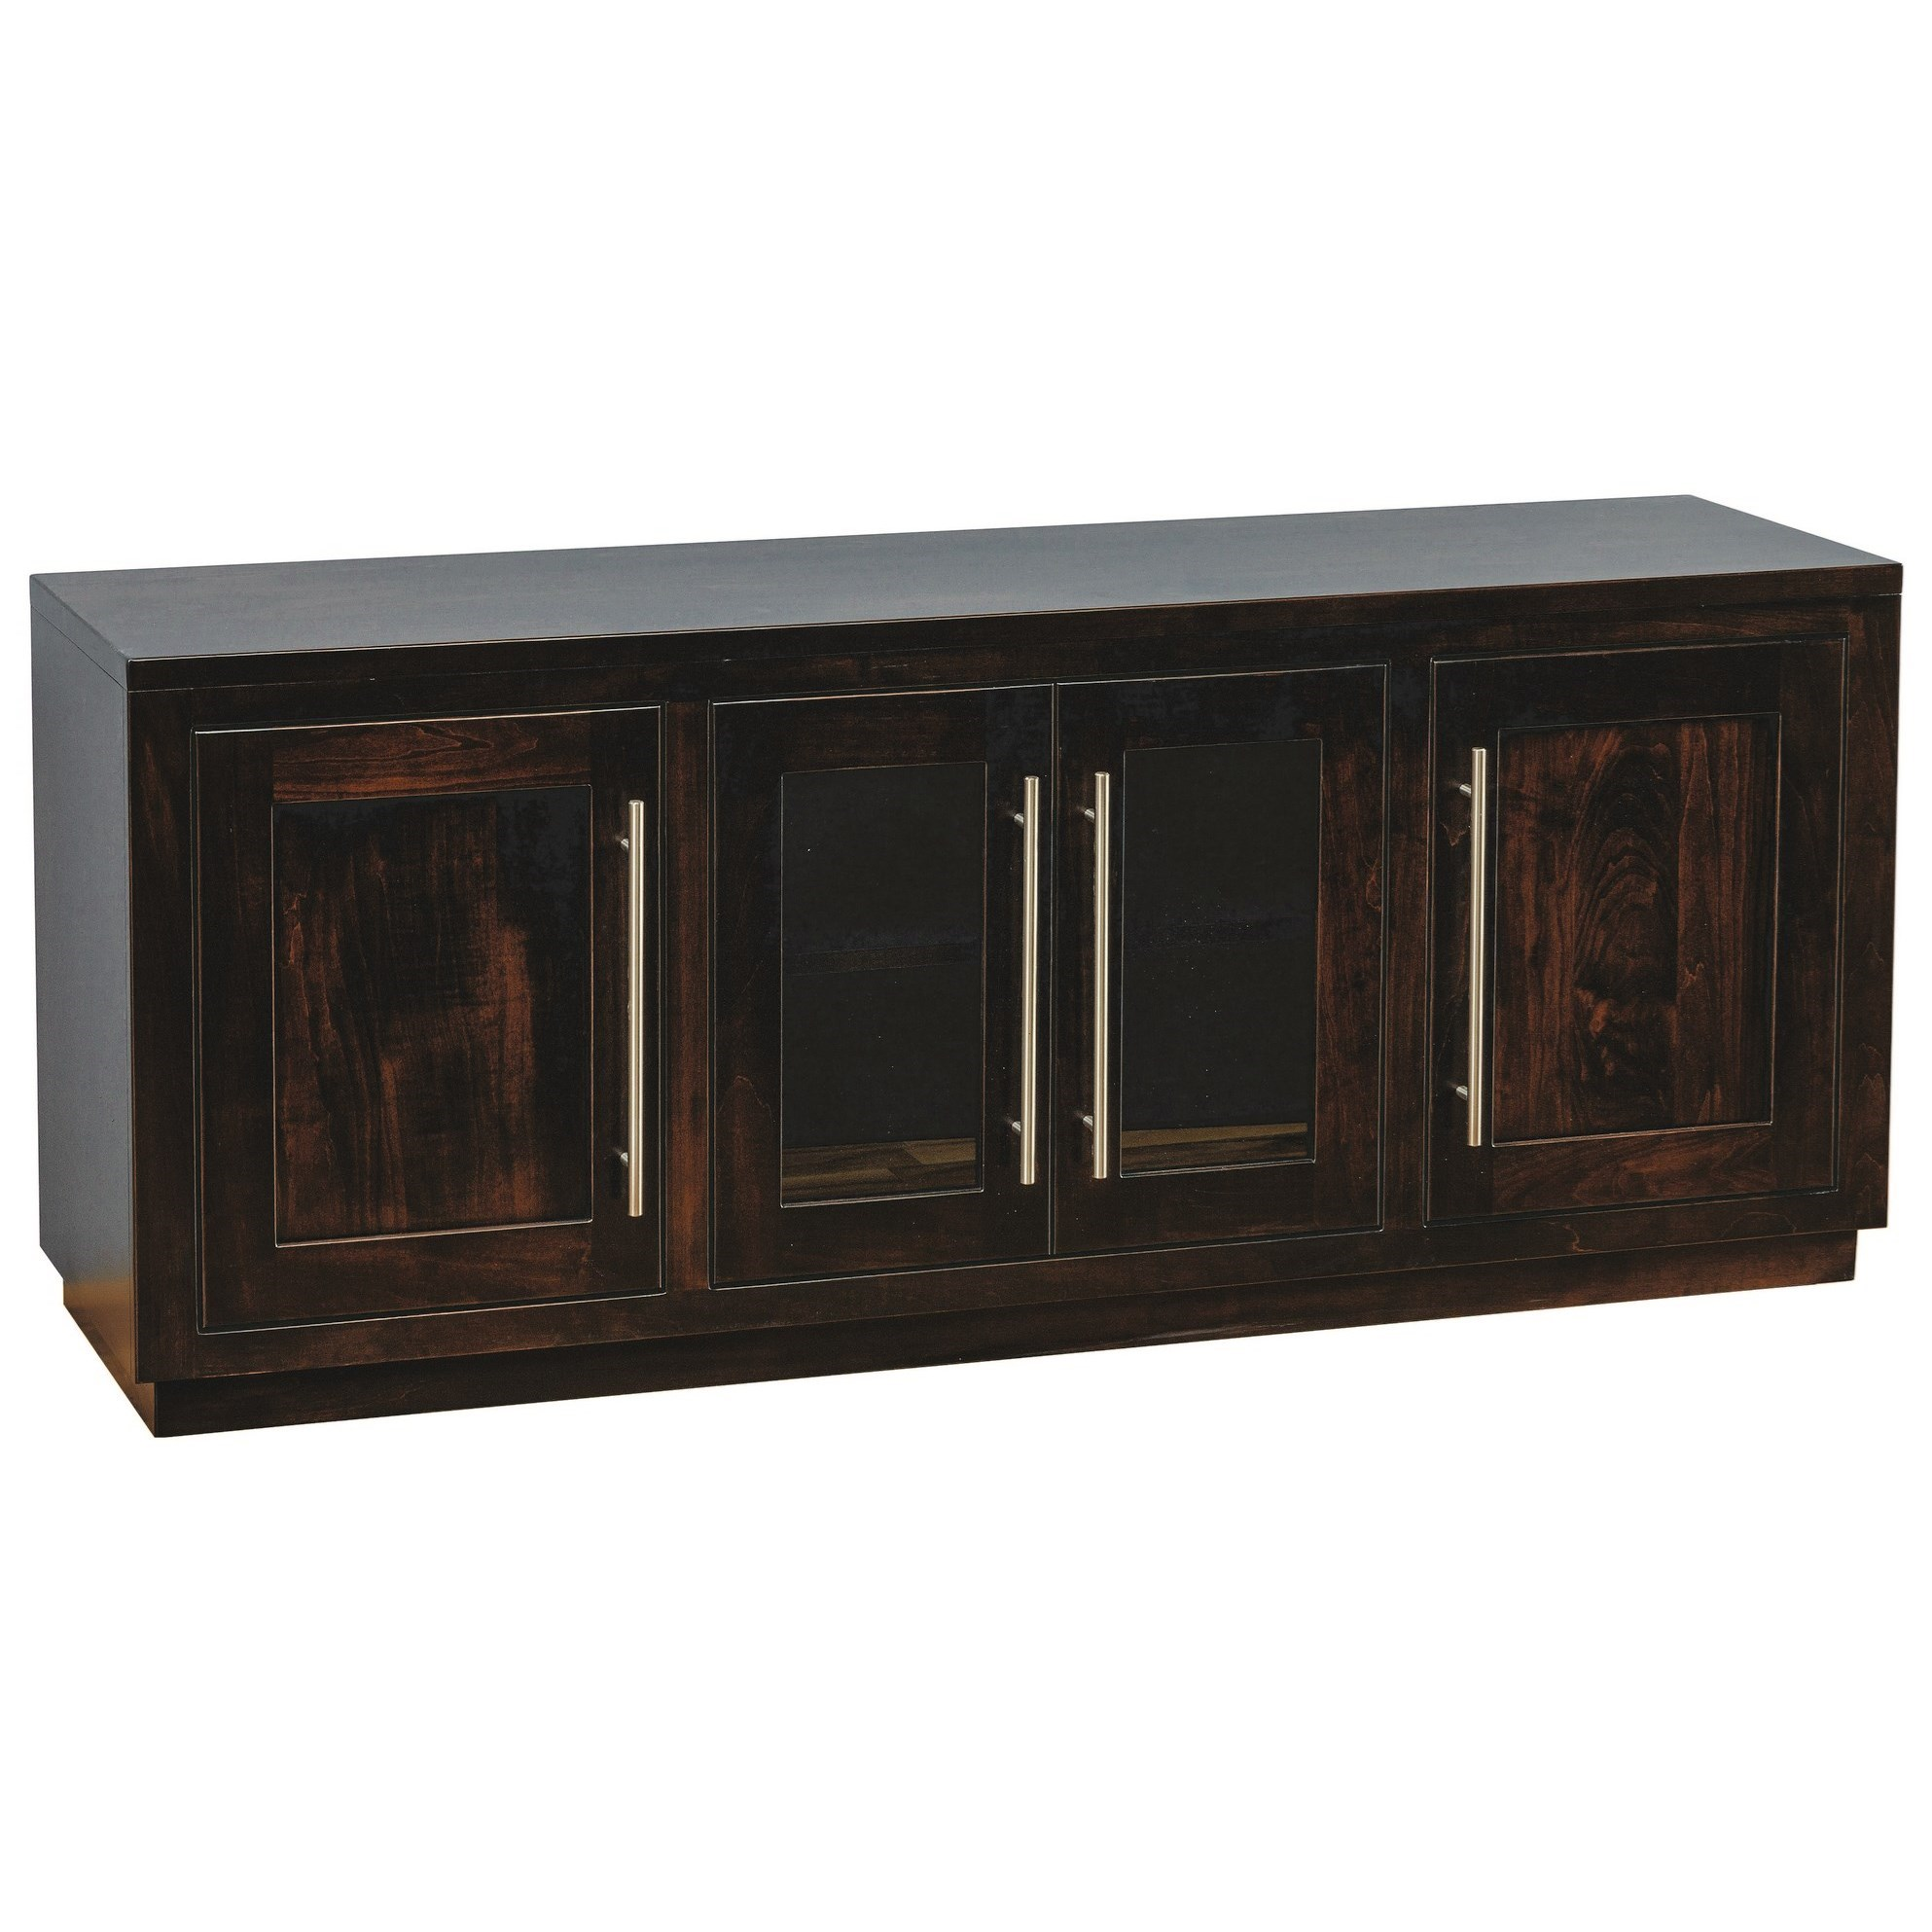 Entertainment NY TV Stand by INTEG Wood Products at Saugerties Furniture Mart